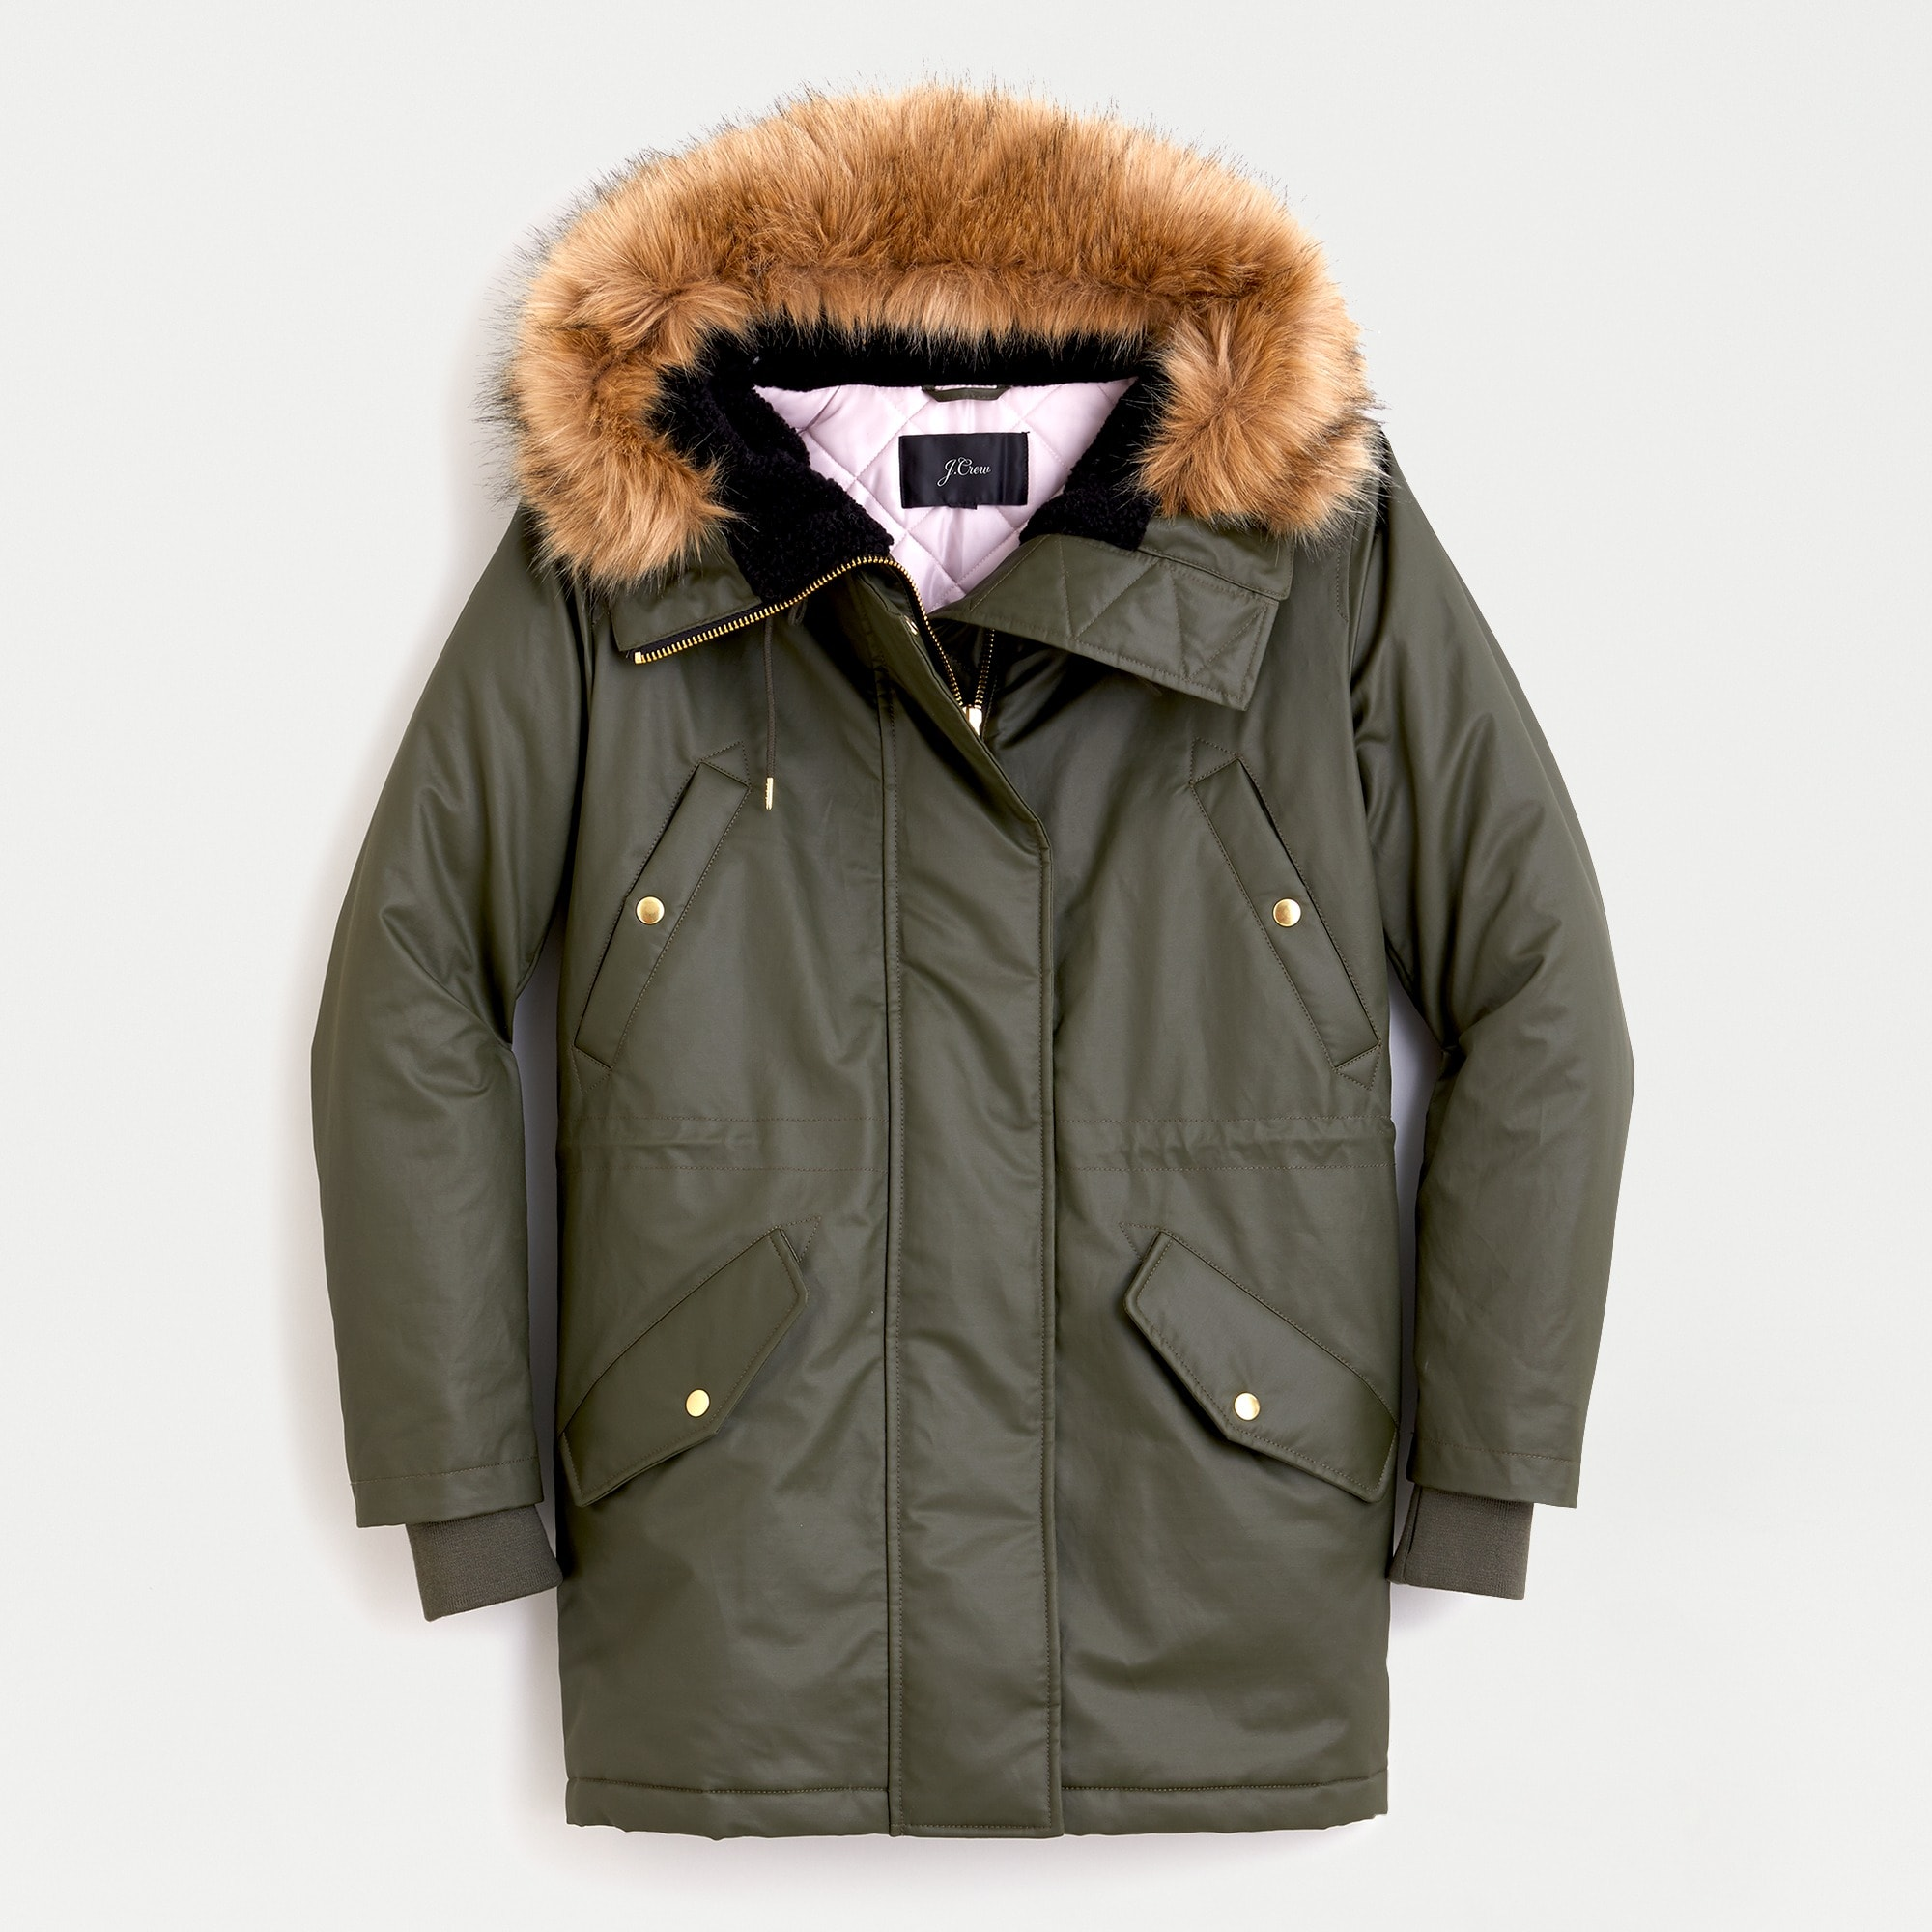 Perfect winter parka